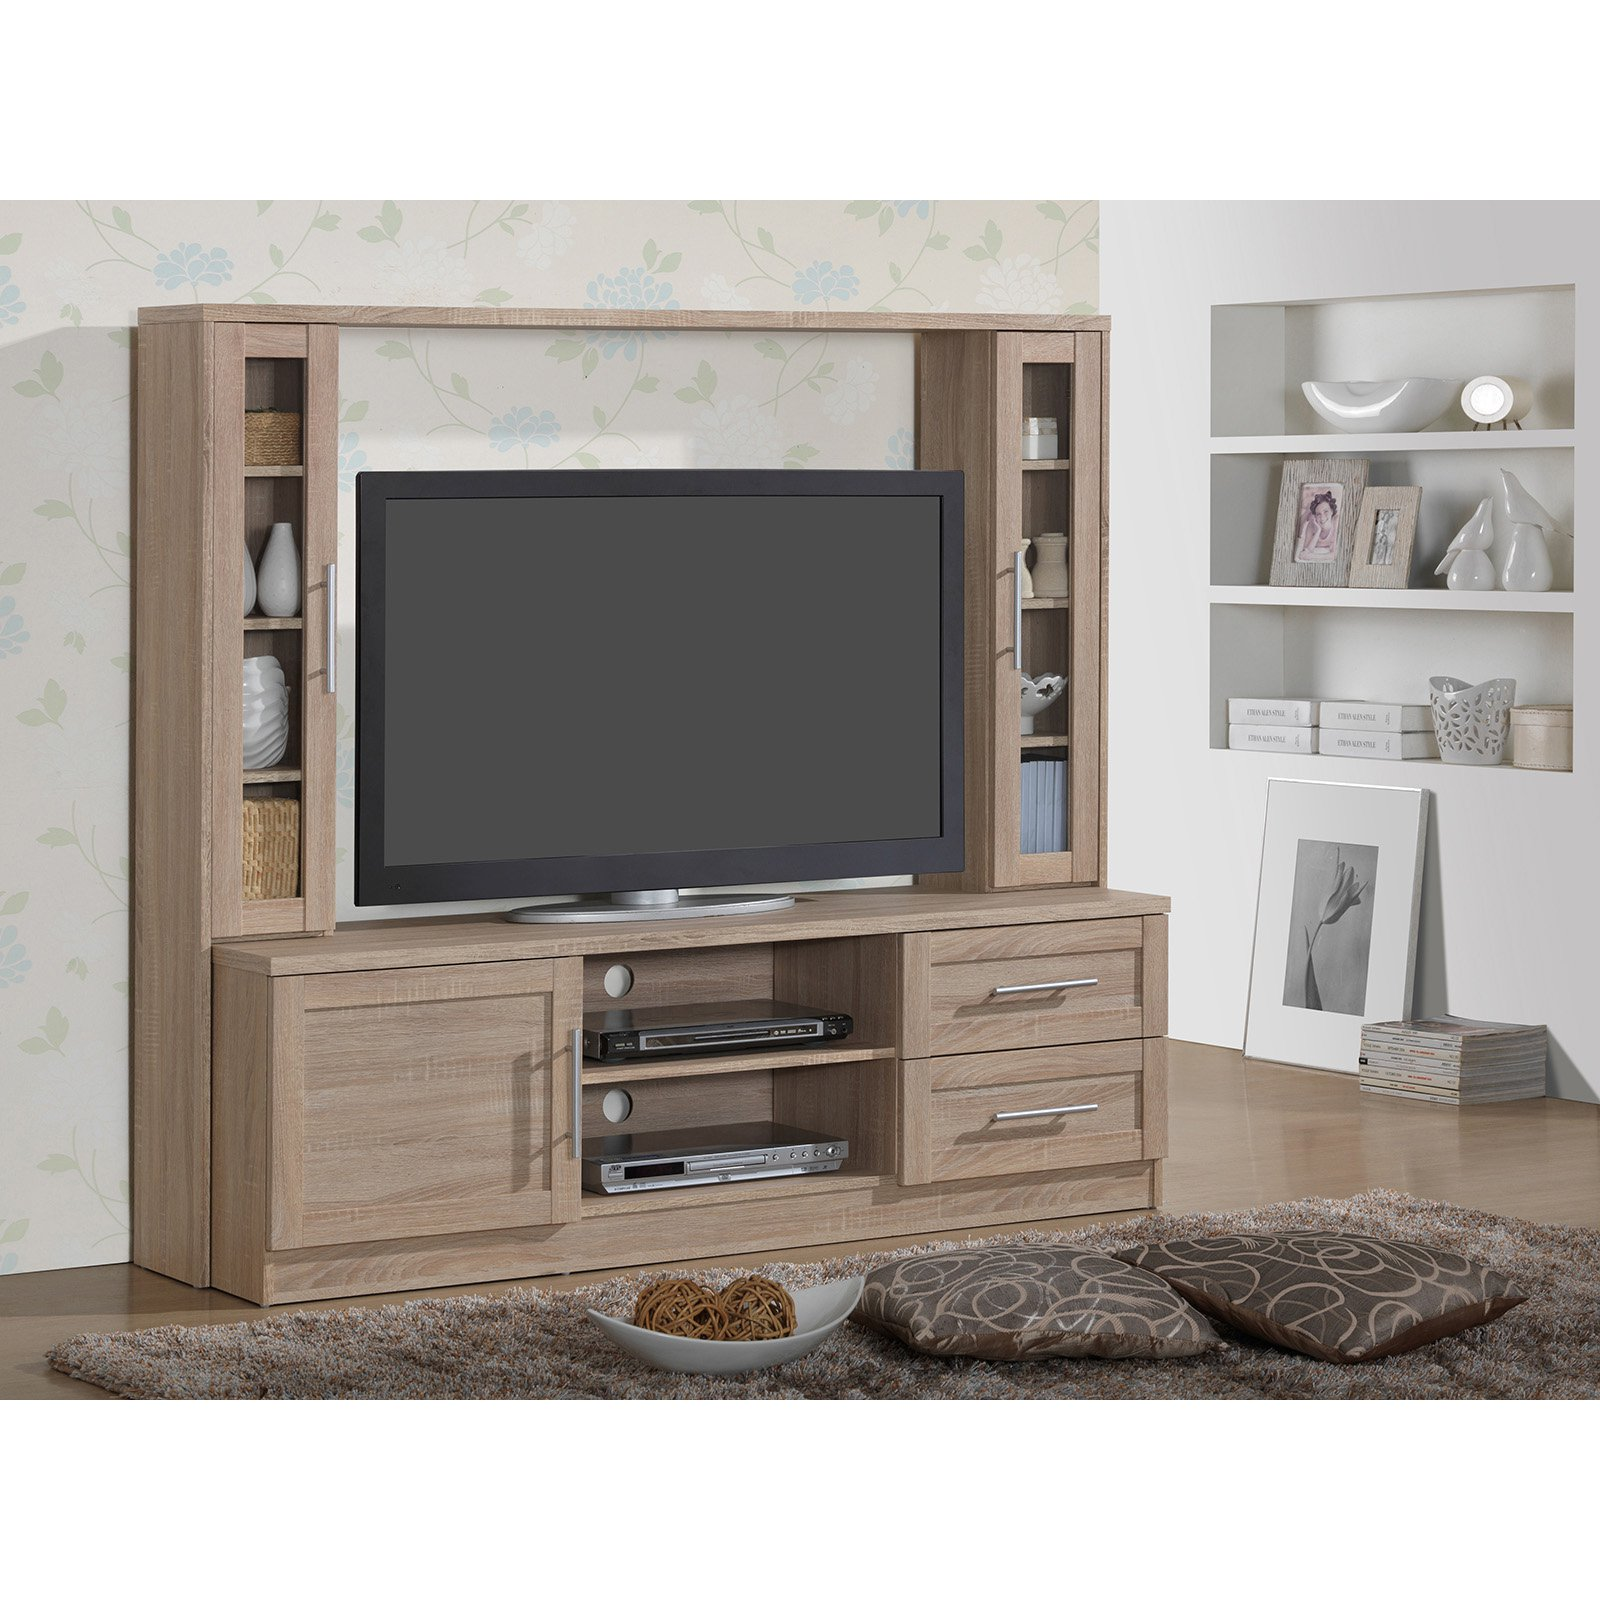 Techni Mobili Vegas Sand Home Entertainment Center for TVs up to 55\ by Techni Mobili